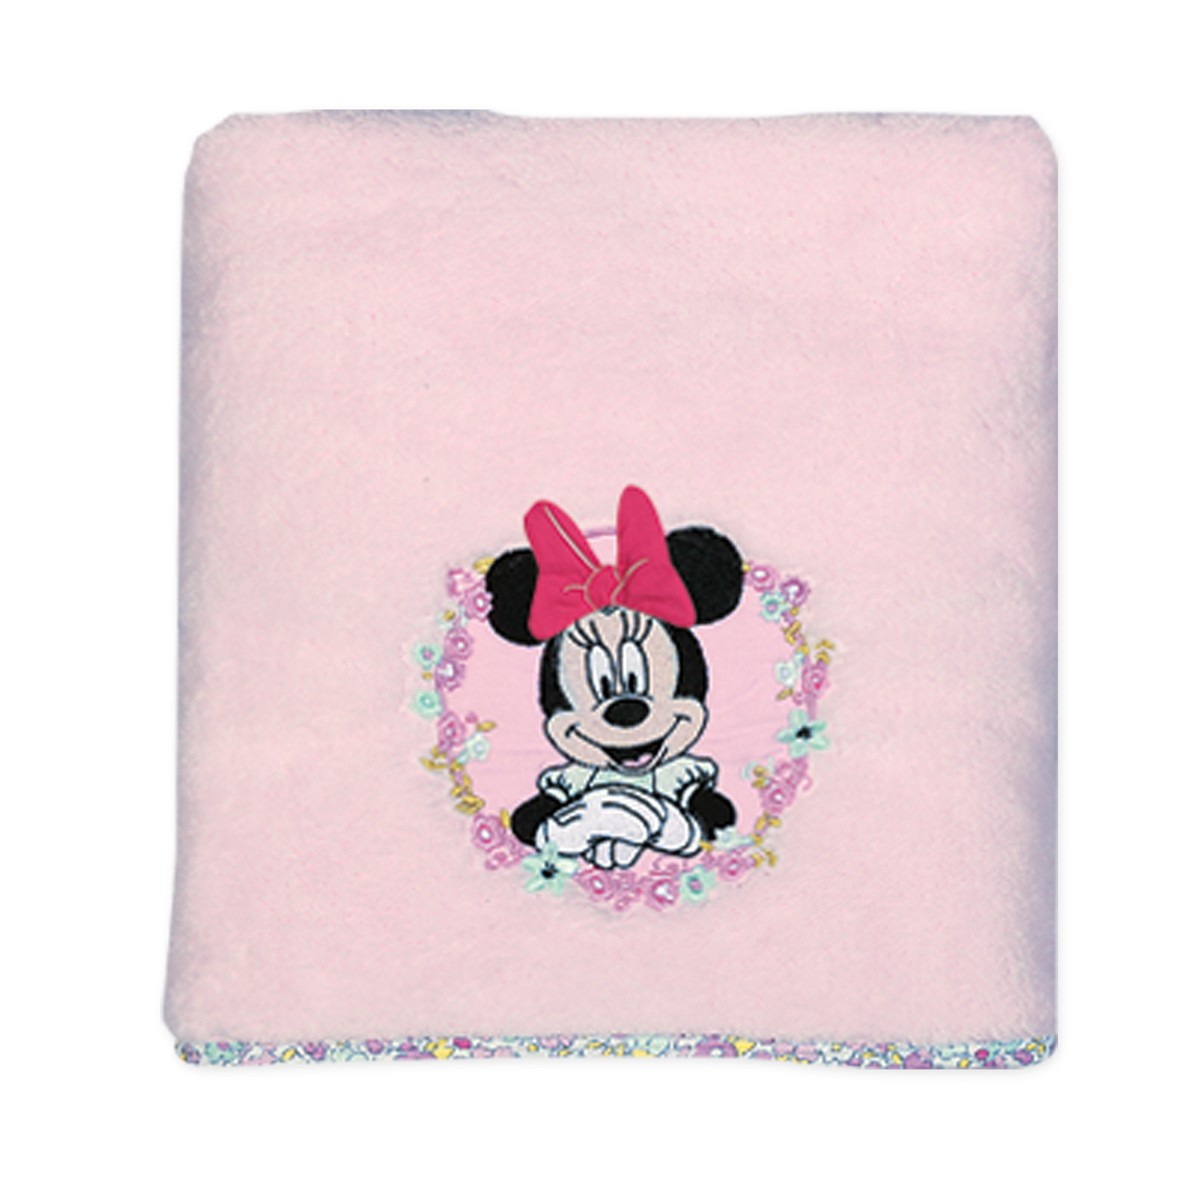 Κουβέρτα Fleece Αγκαλιάς Nef-Nef Disney Minnie Little Flower